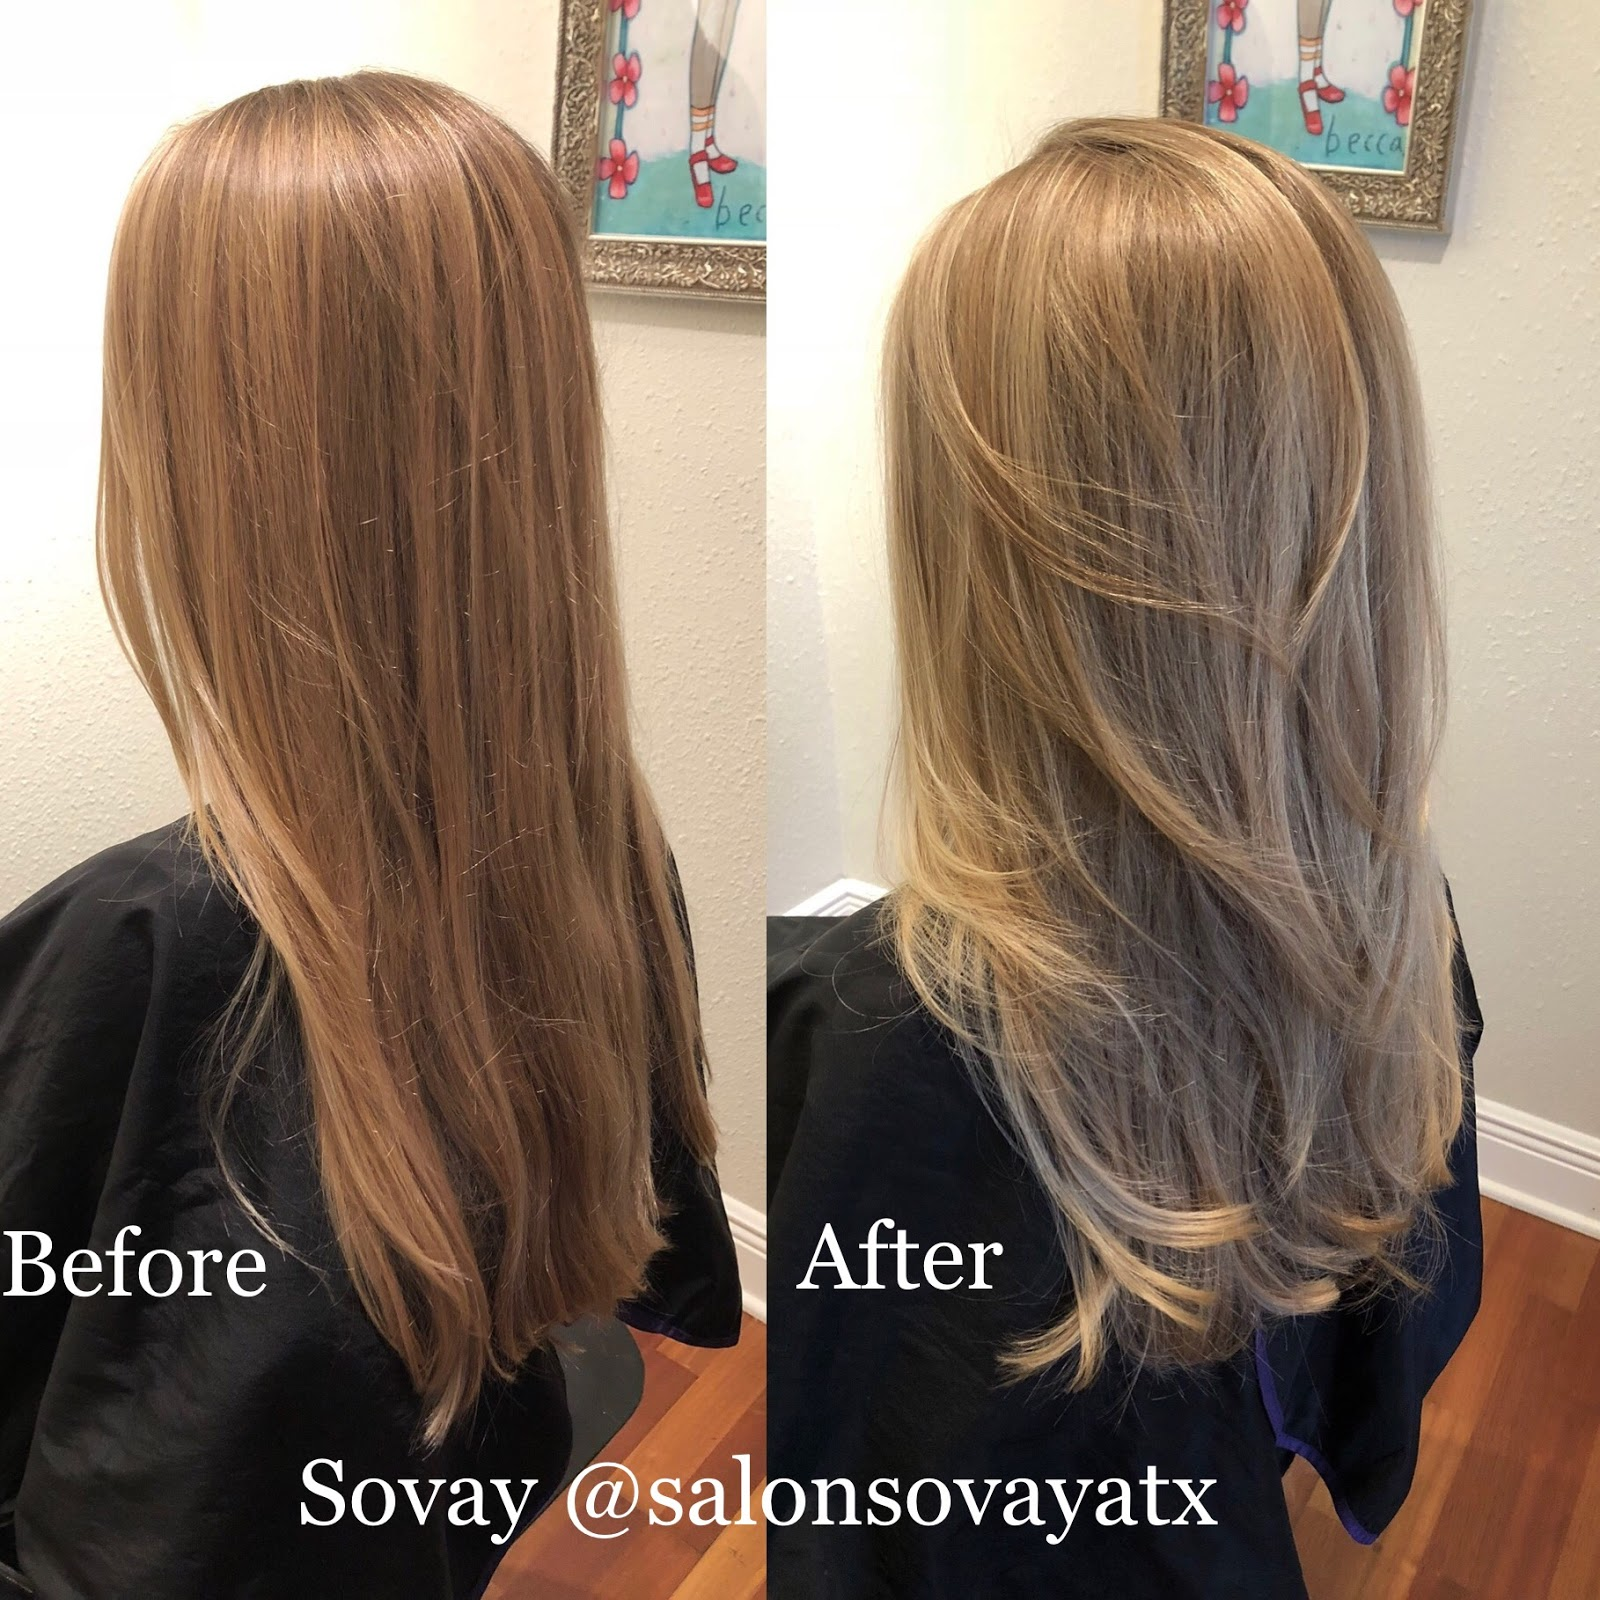 Salon Sovay Best Natural Highlights In Austin With Austin Stylist